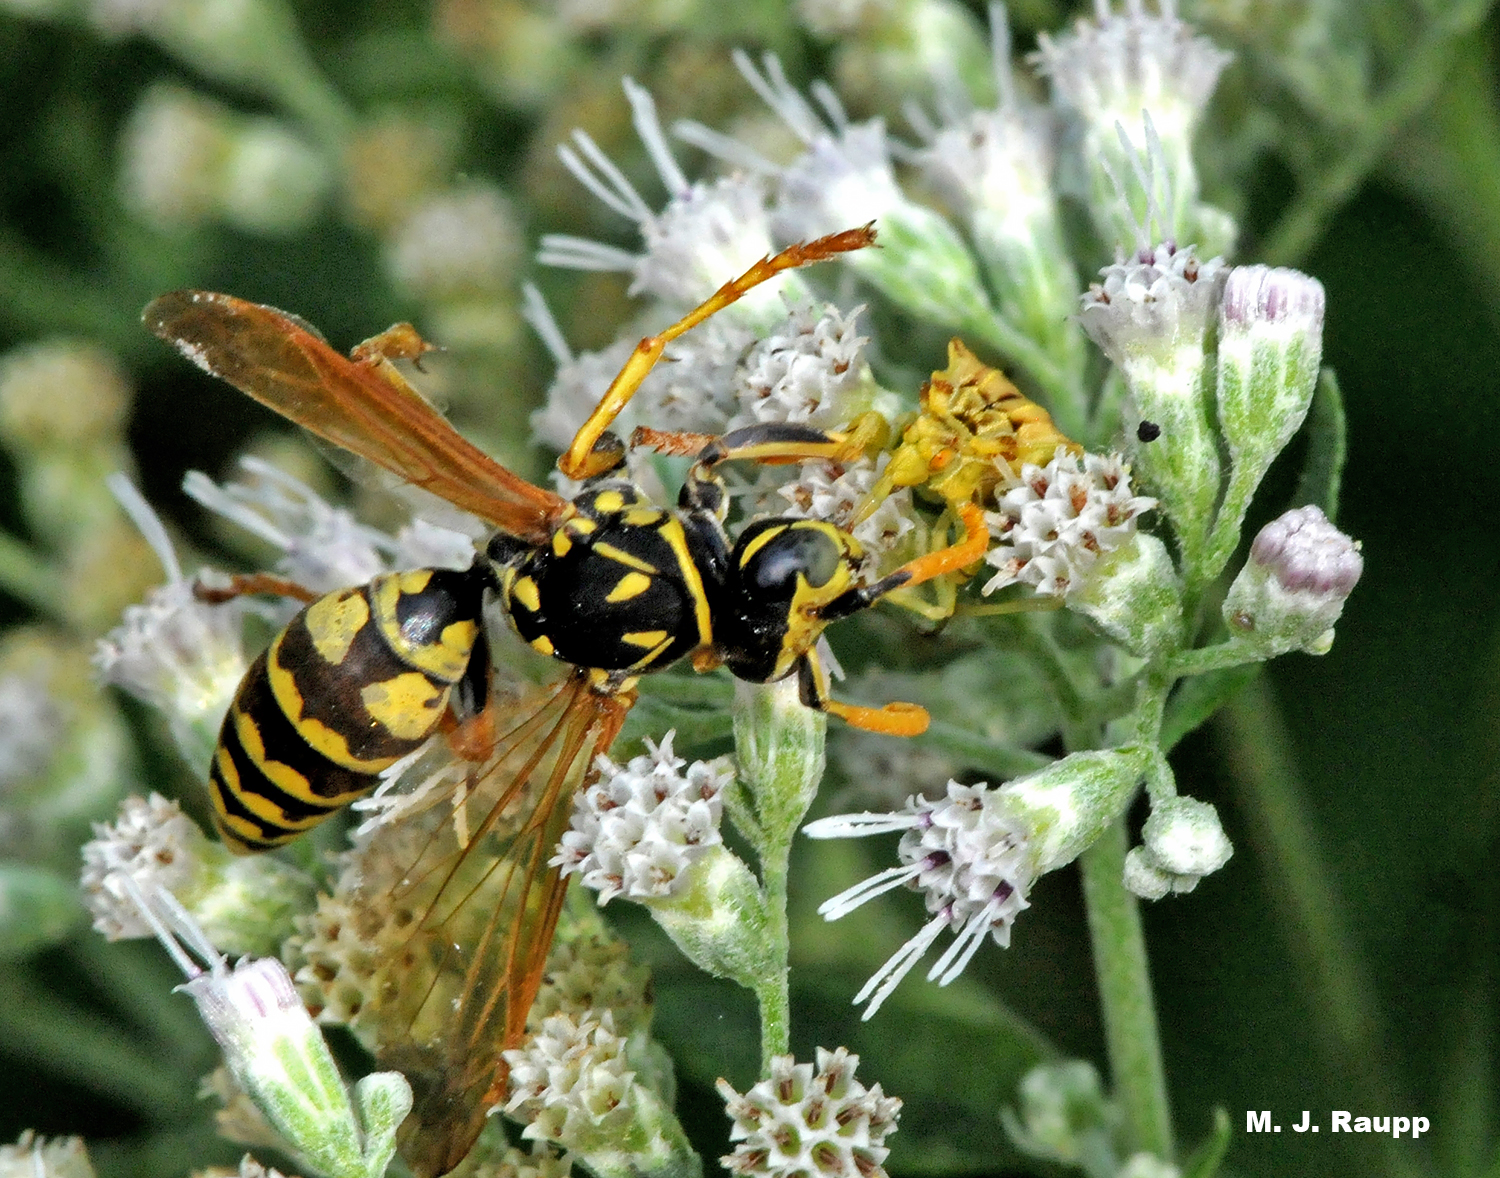 A yellow and brown ambush bug gives a small wasp a perfidious kiss.